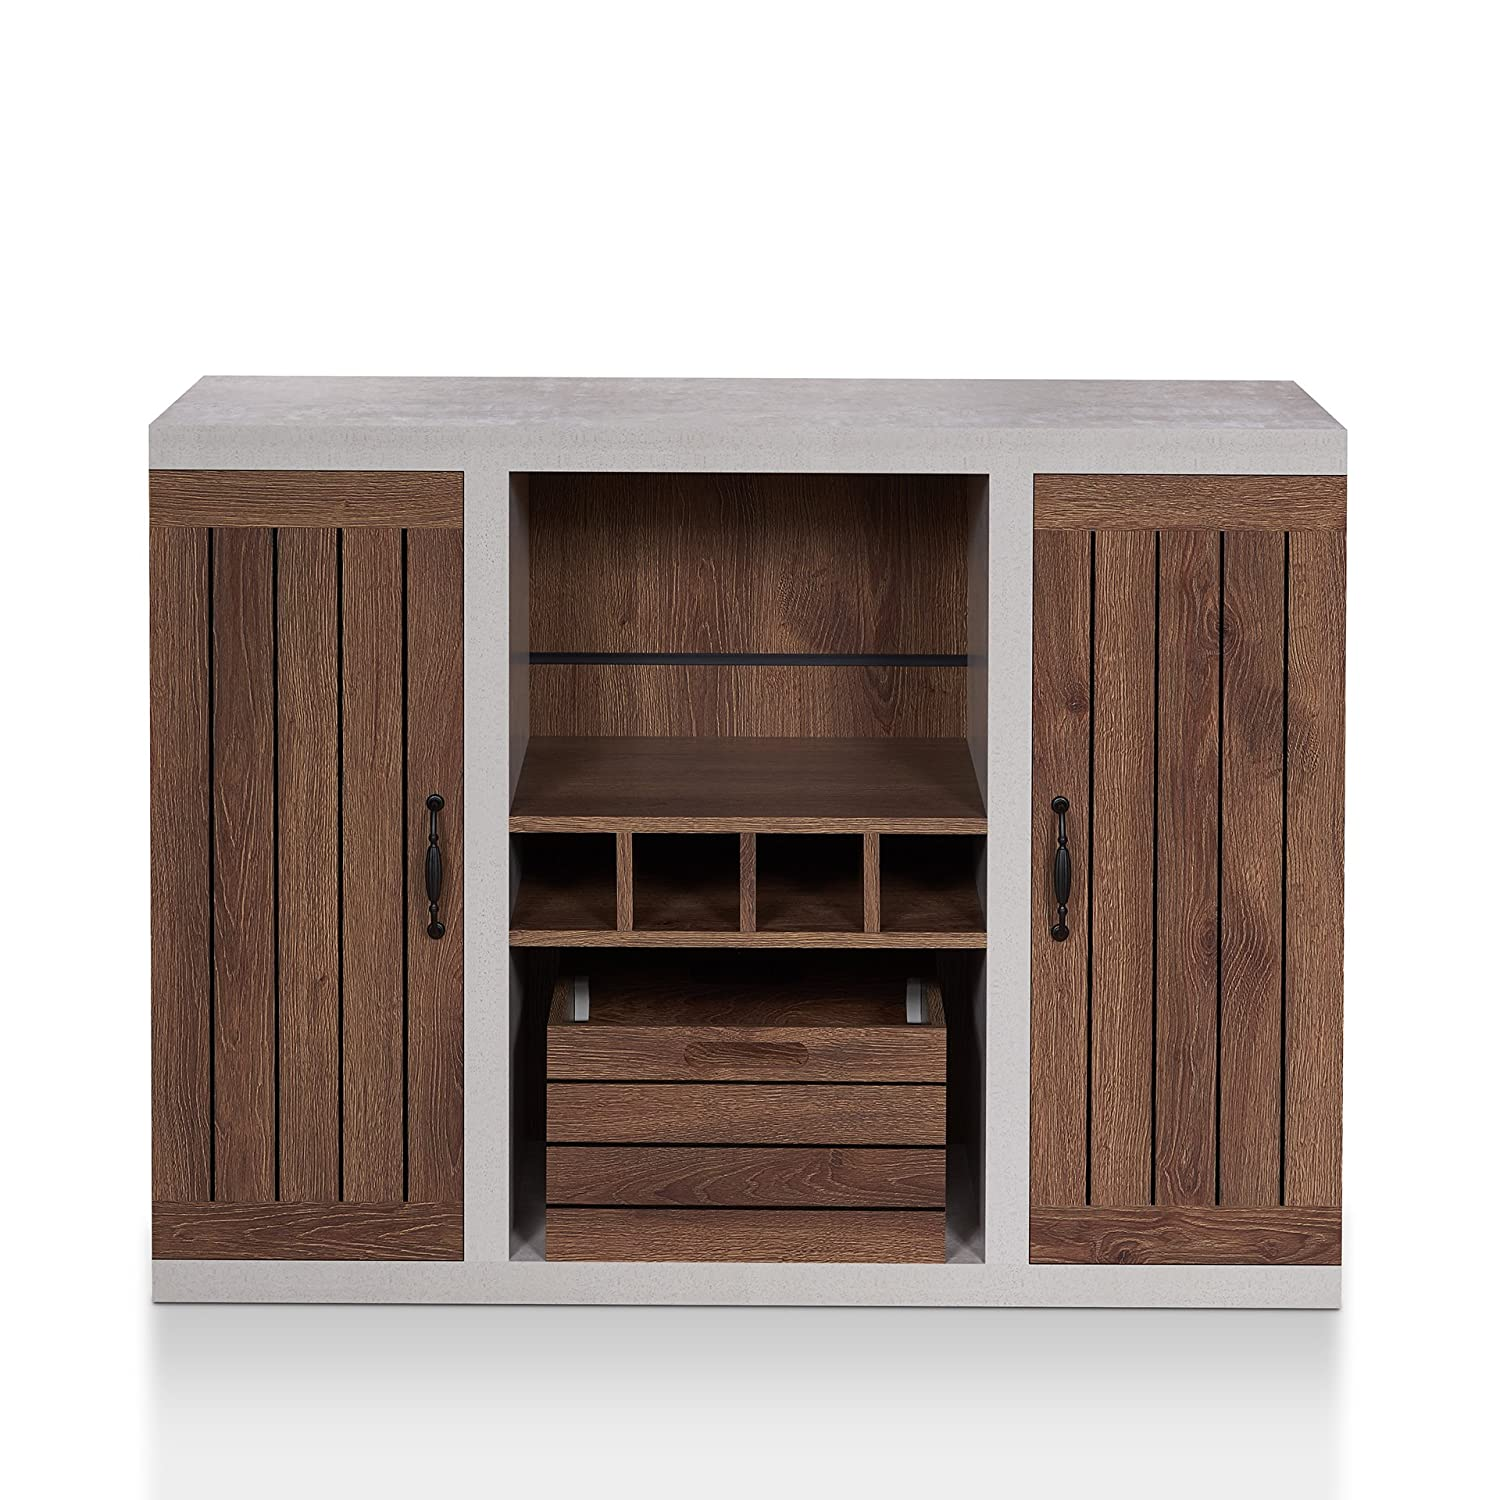 ioHOMES Cato Industrial Two-Tone Buffet with Open Shelf, Wine Bottle Holder, Slatted Drawer and Cabinets, Distressed Walnut and Cement